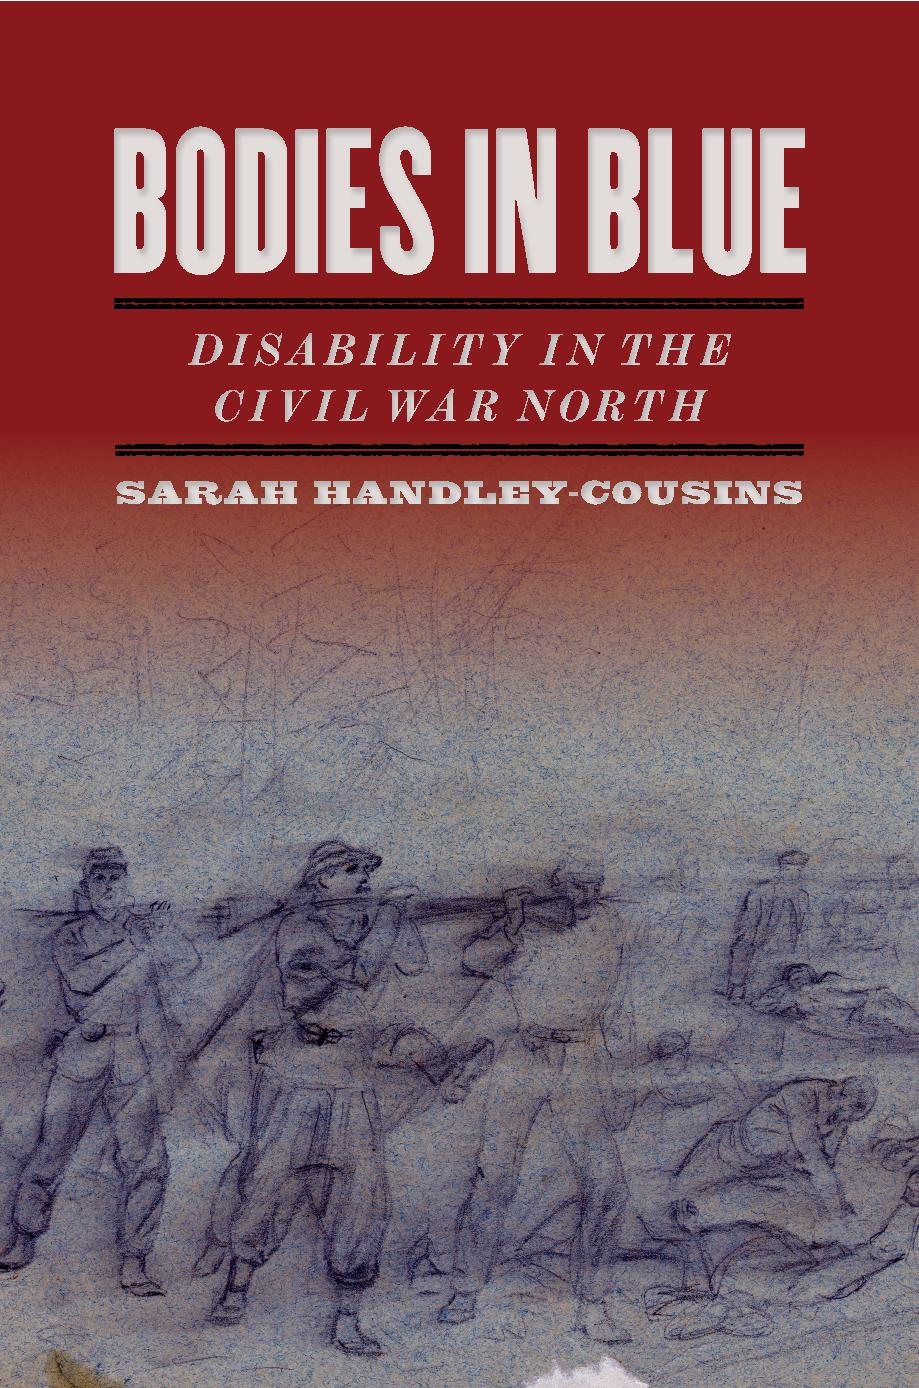 Bodies in Blue - Sarah's first book, Bodies in Blue: Disability in the Civil War North, explores the difficult gendered terrain disabled Union soldiers traversed during and after the American Civil War.